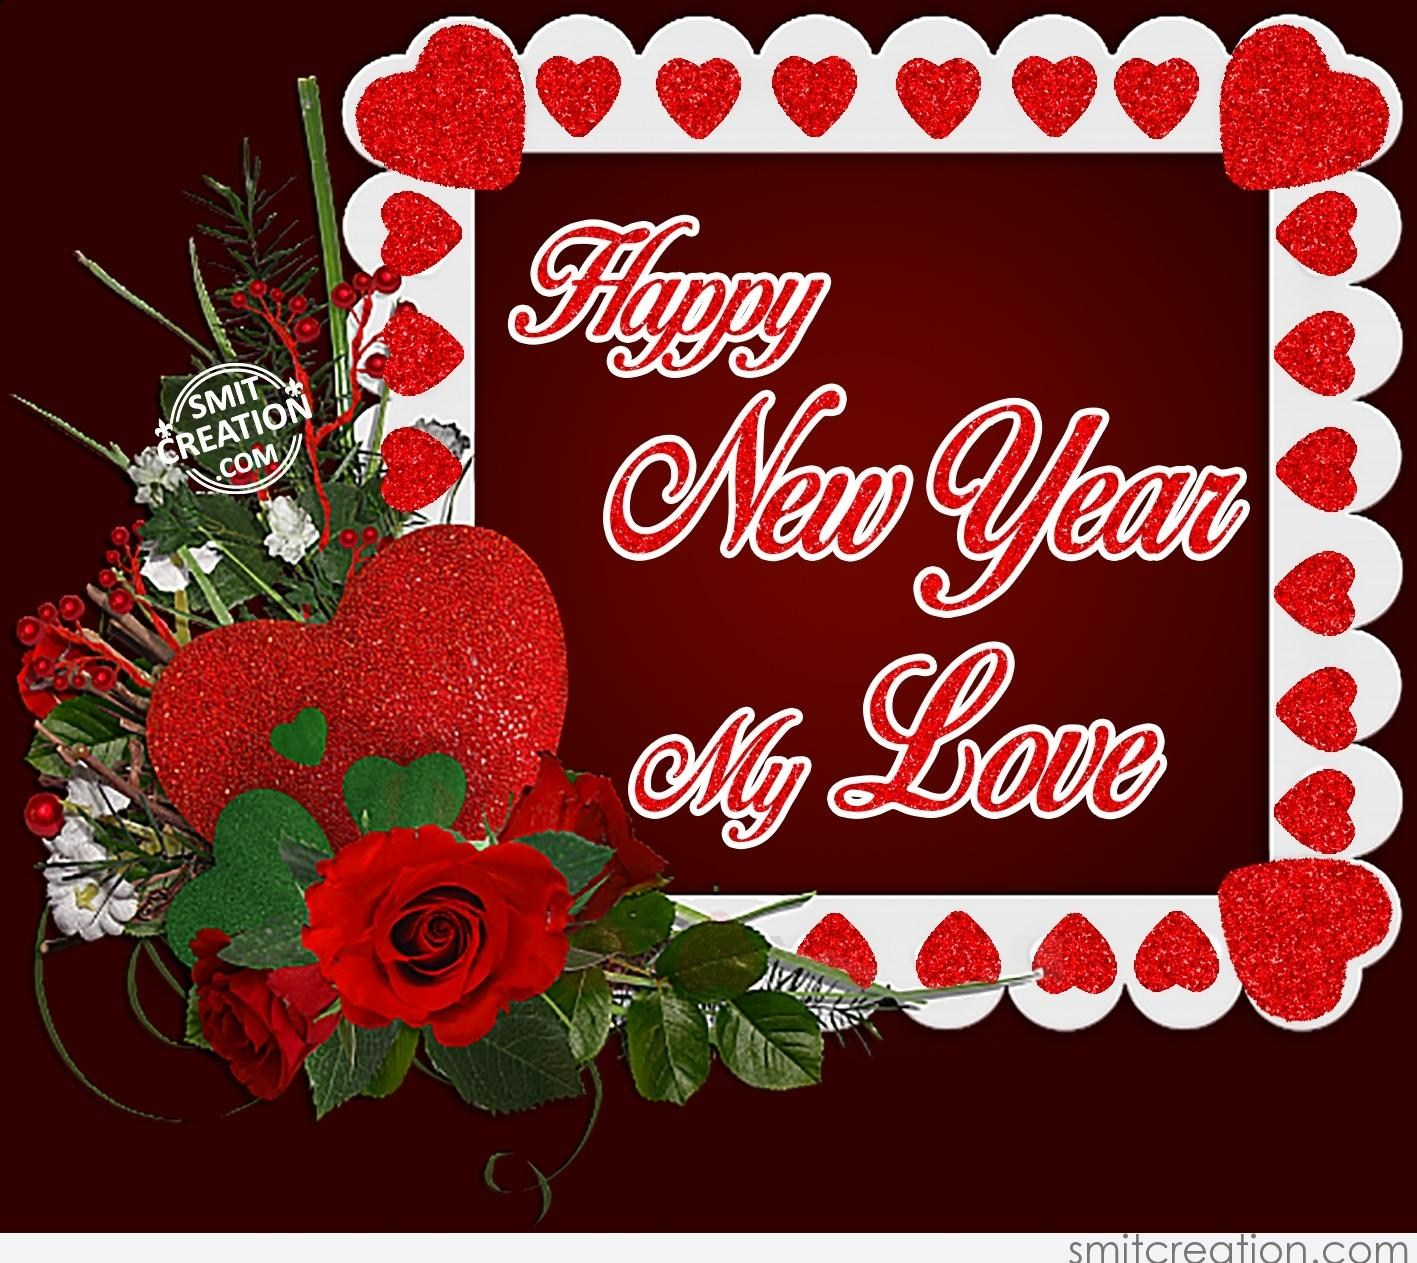 Happy New Year My Love Smitcreation